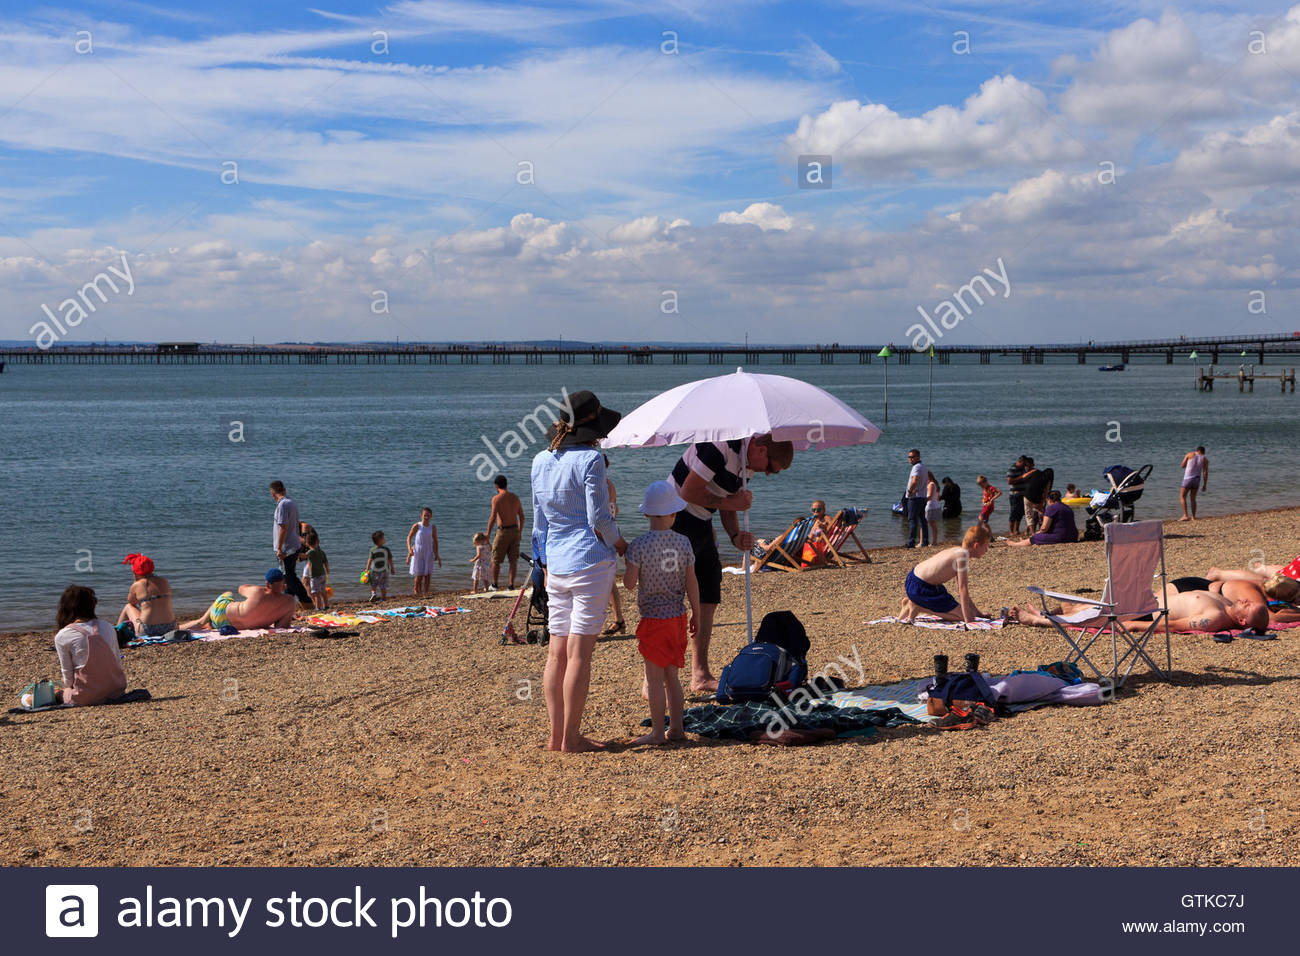 A family are on the busy Jubilee Beach in Southend-On-Sea, Essex. The father is pushing a parasol into the shingle - Stock Image